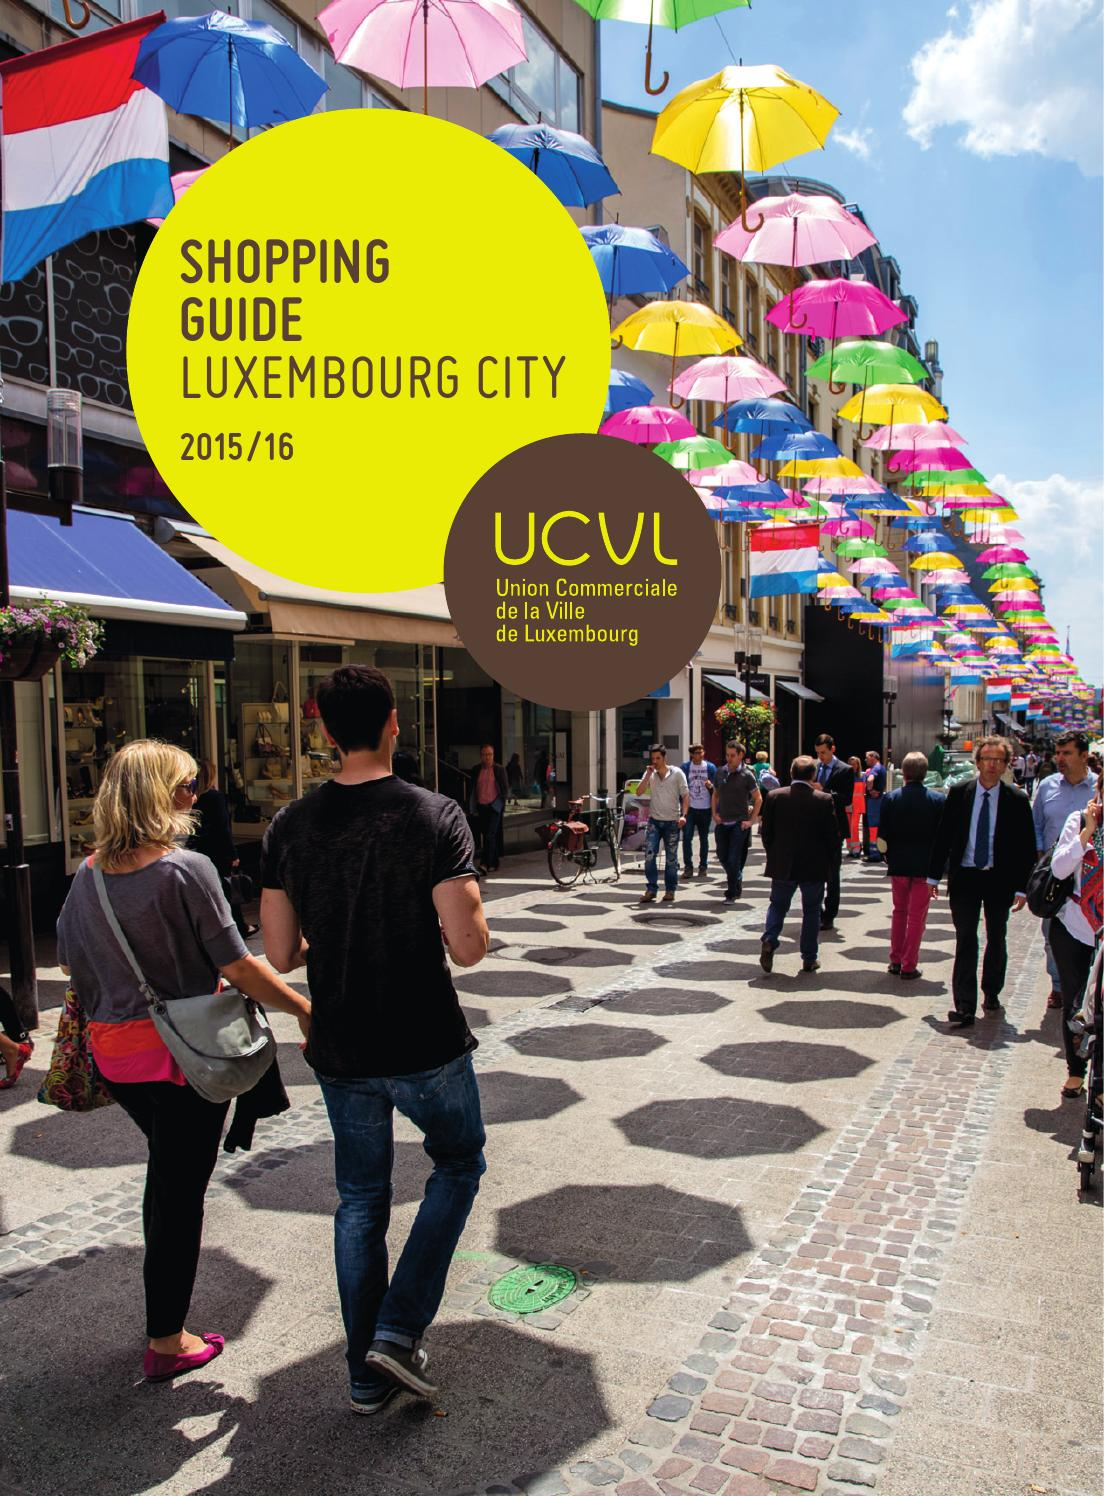 fb7d48bf583b7 Shopping Guide Luxembourg City by Cityshopping - issuu